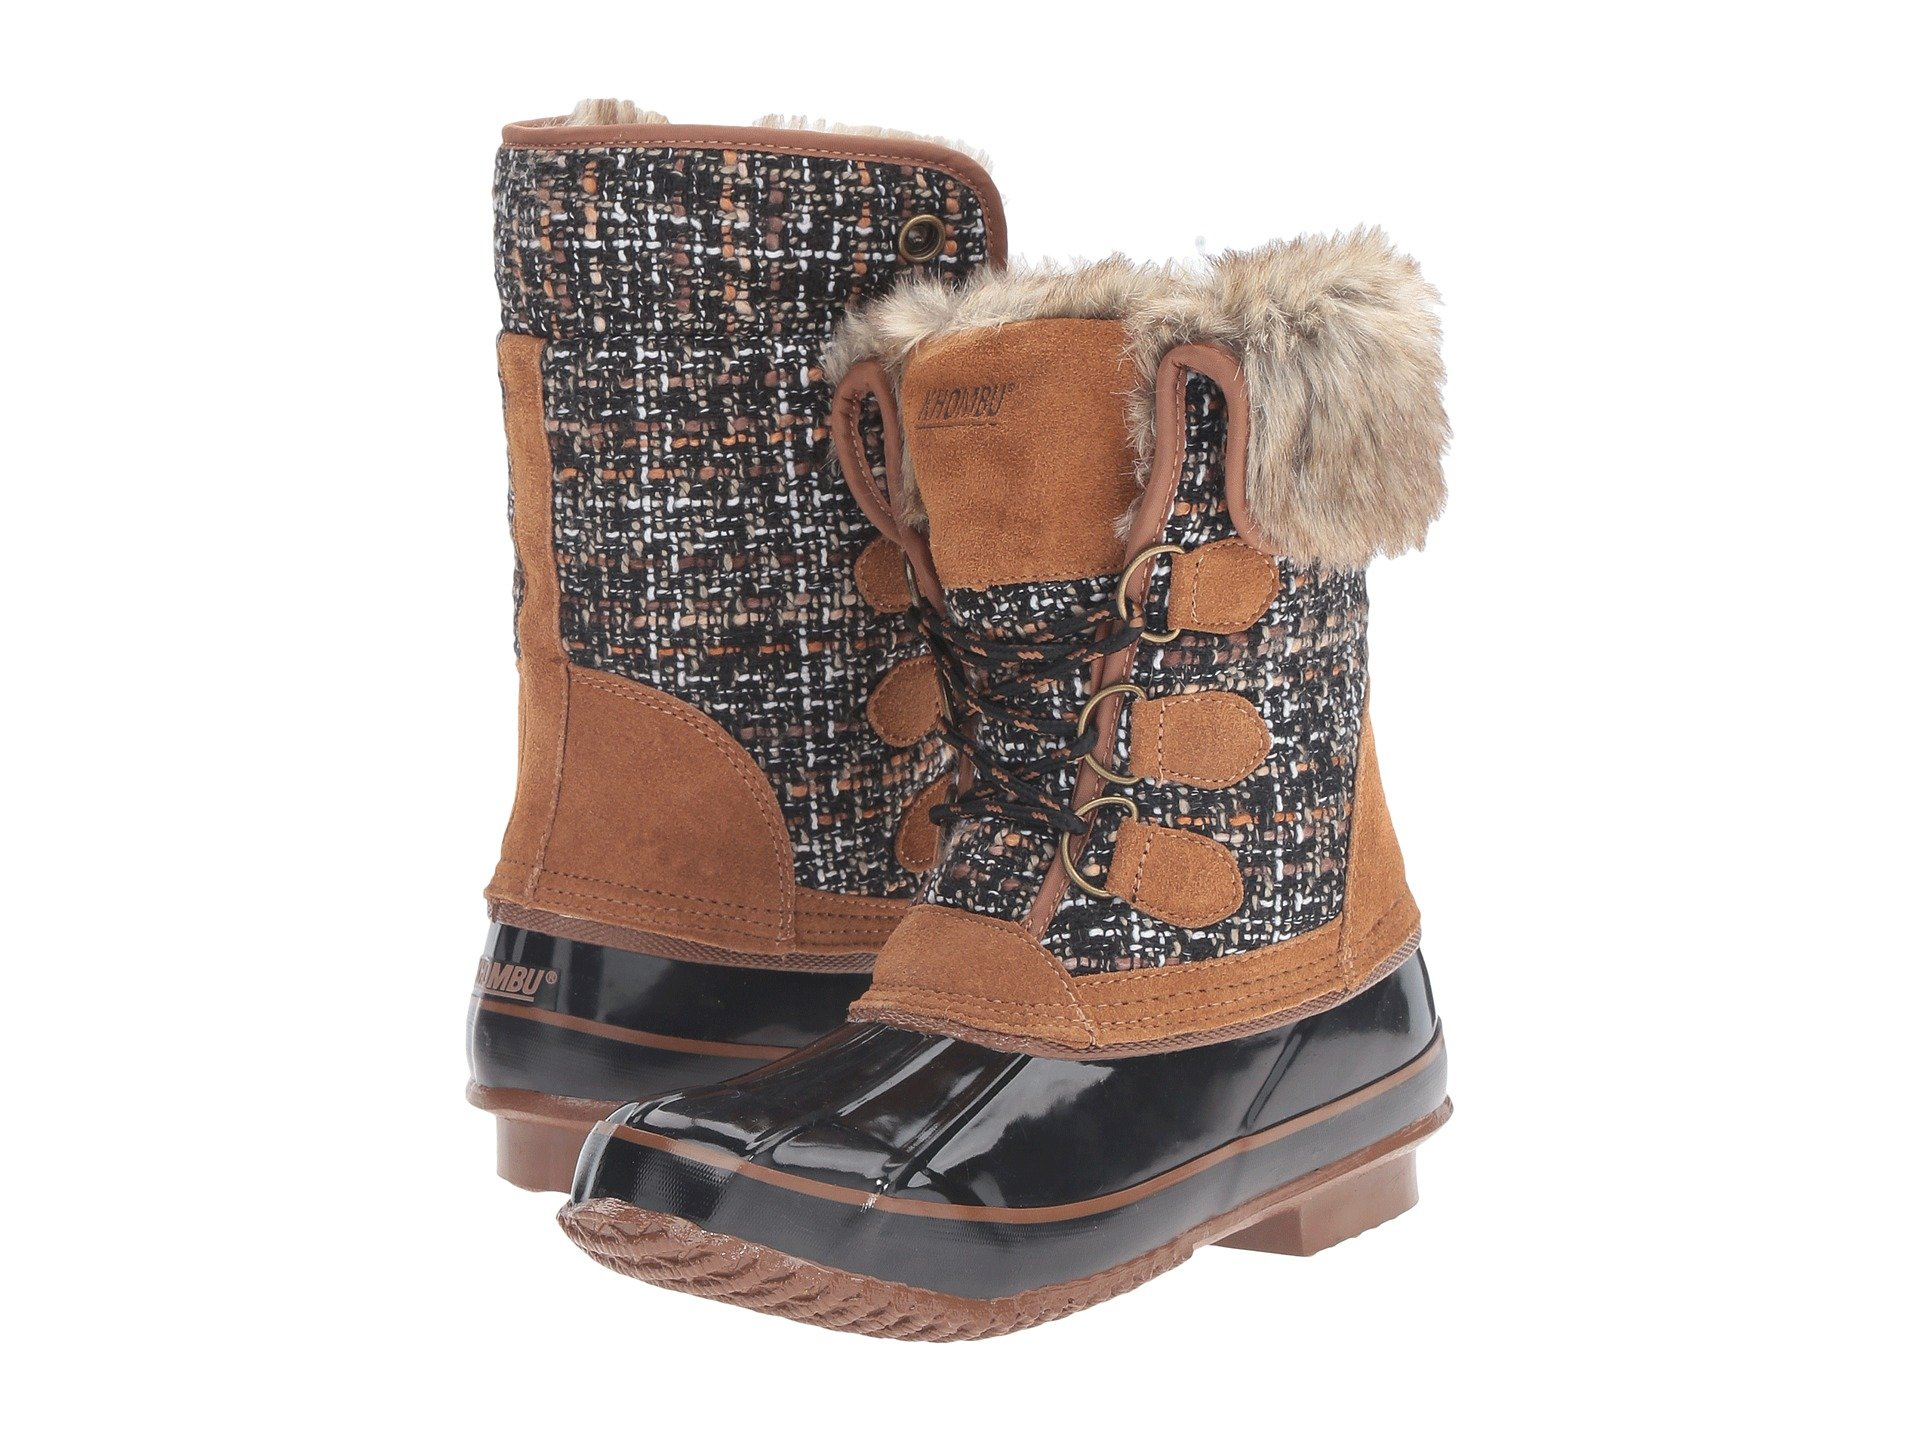 JULLIARD DUCK BOOT